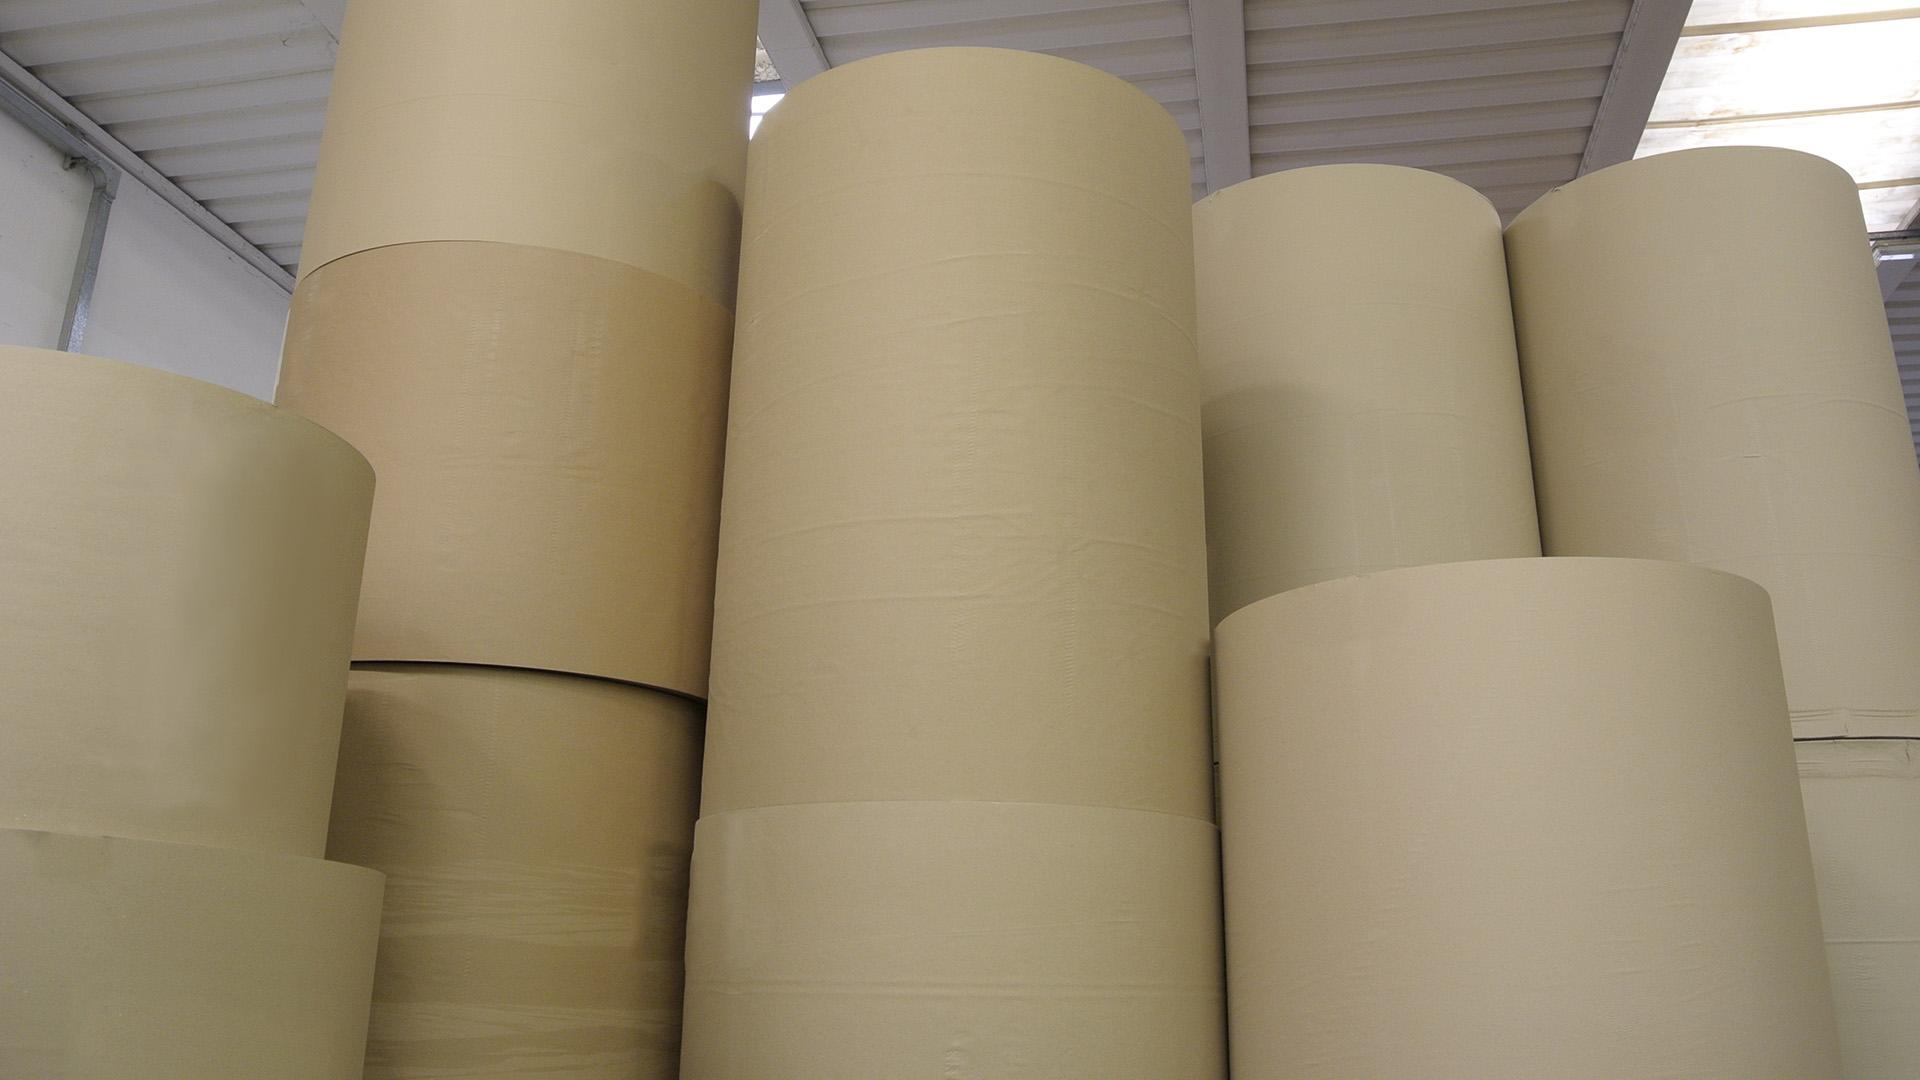 Duplex and Triplex Board is available in rolls or sheets.